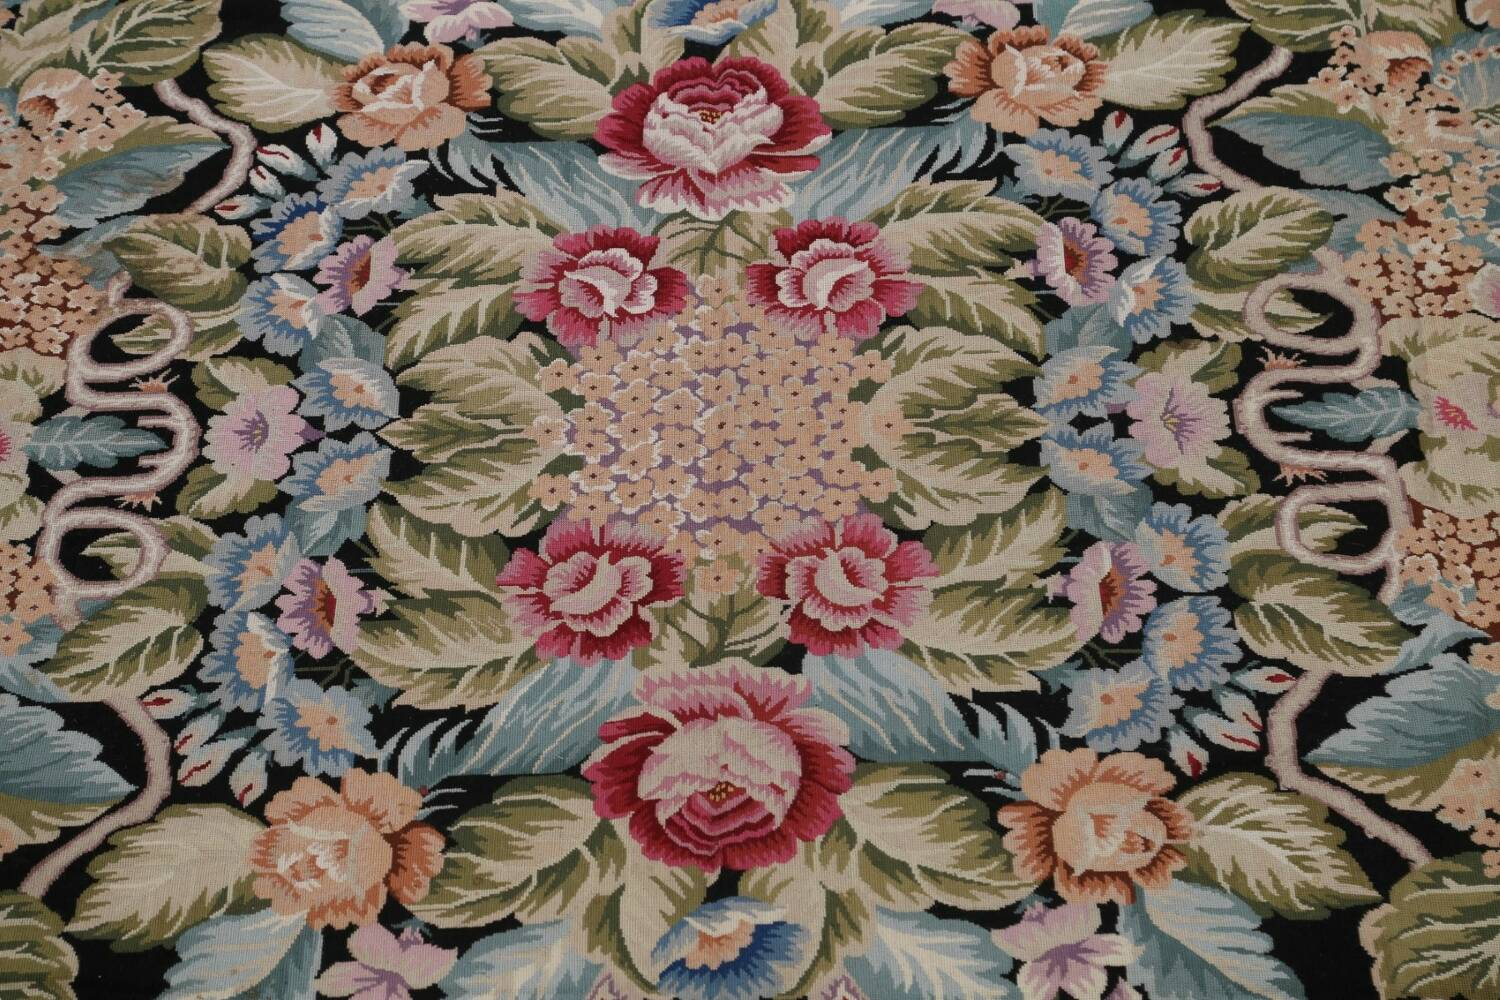 All-Over Floral Needlepoint Oriental Area Rug 10x14 image 4